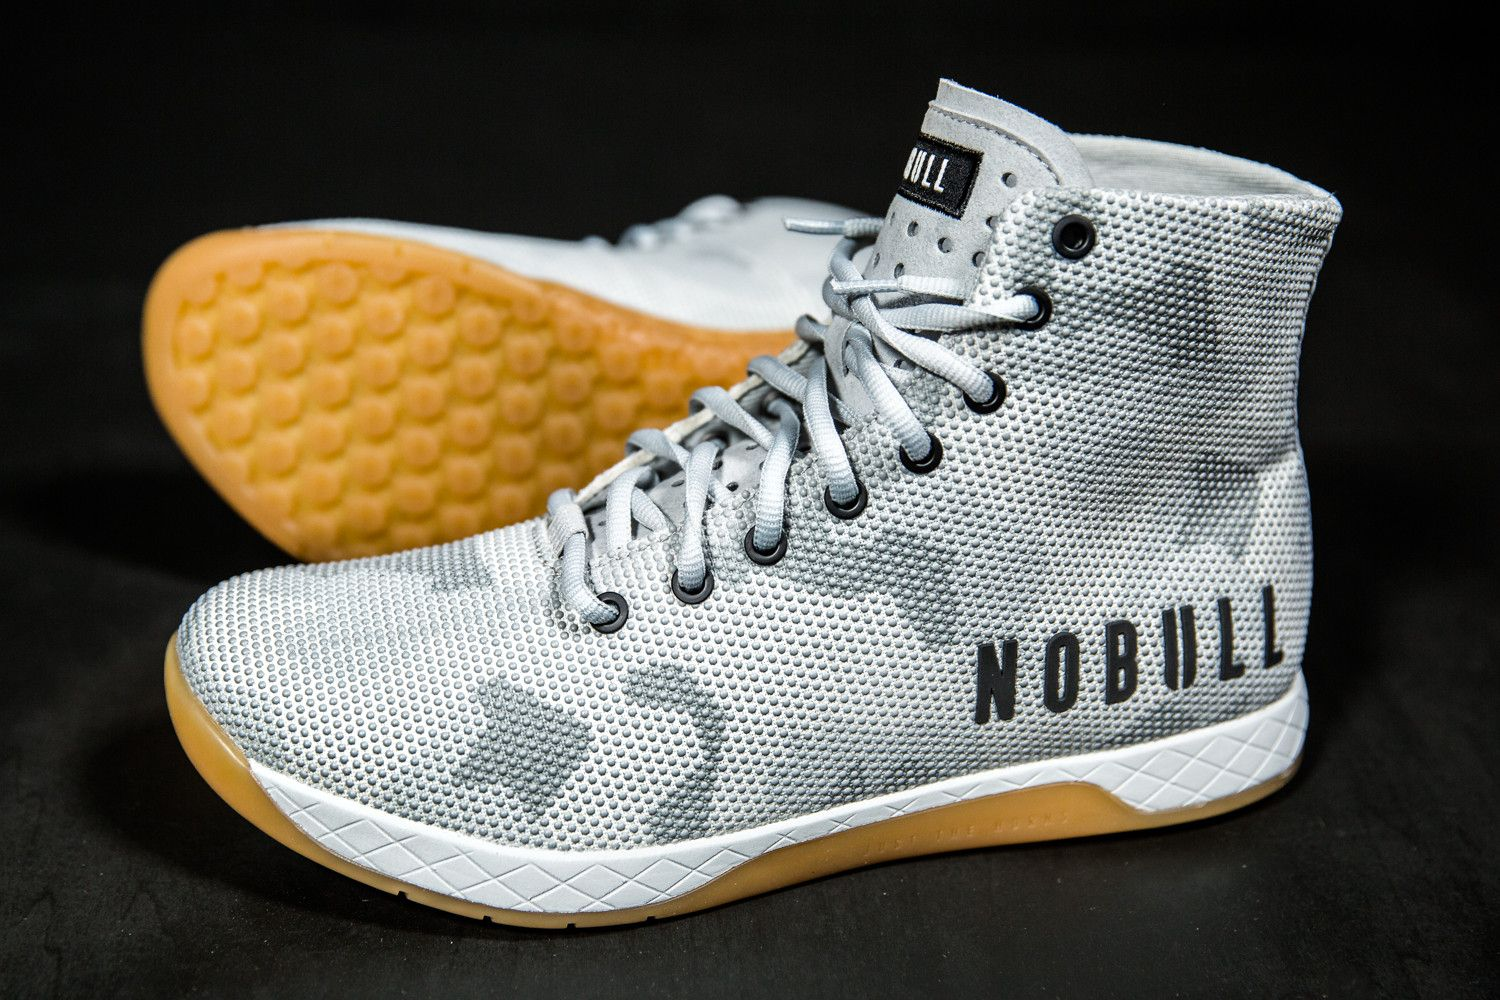 43caf51f98253 HIGH-TOP WHITE CAMO TRAINER (MEN'S) from NOBULL | All things men ...